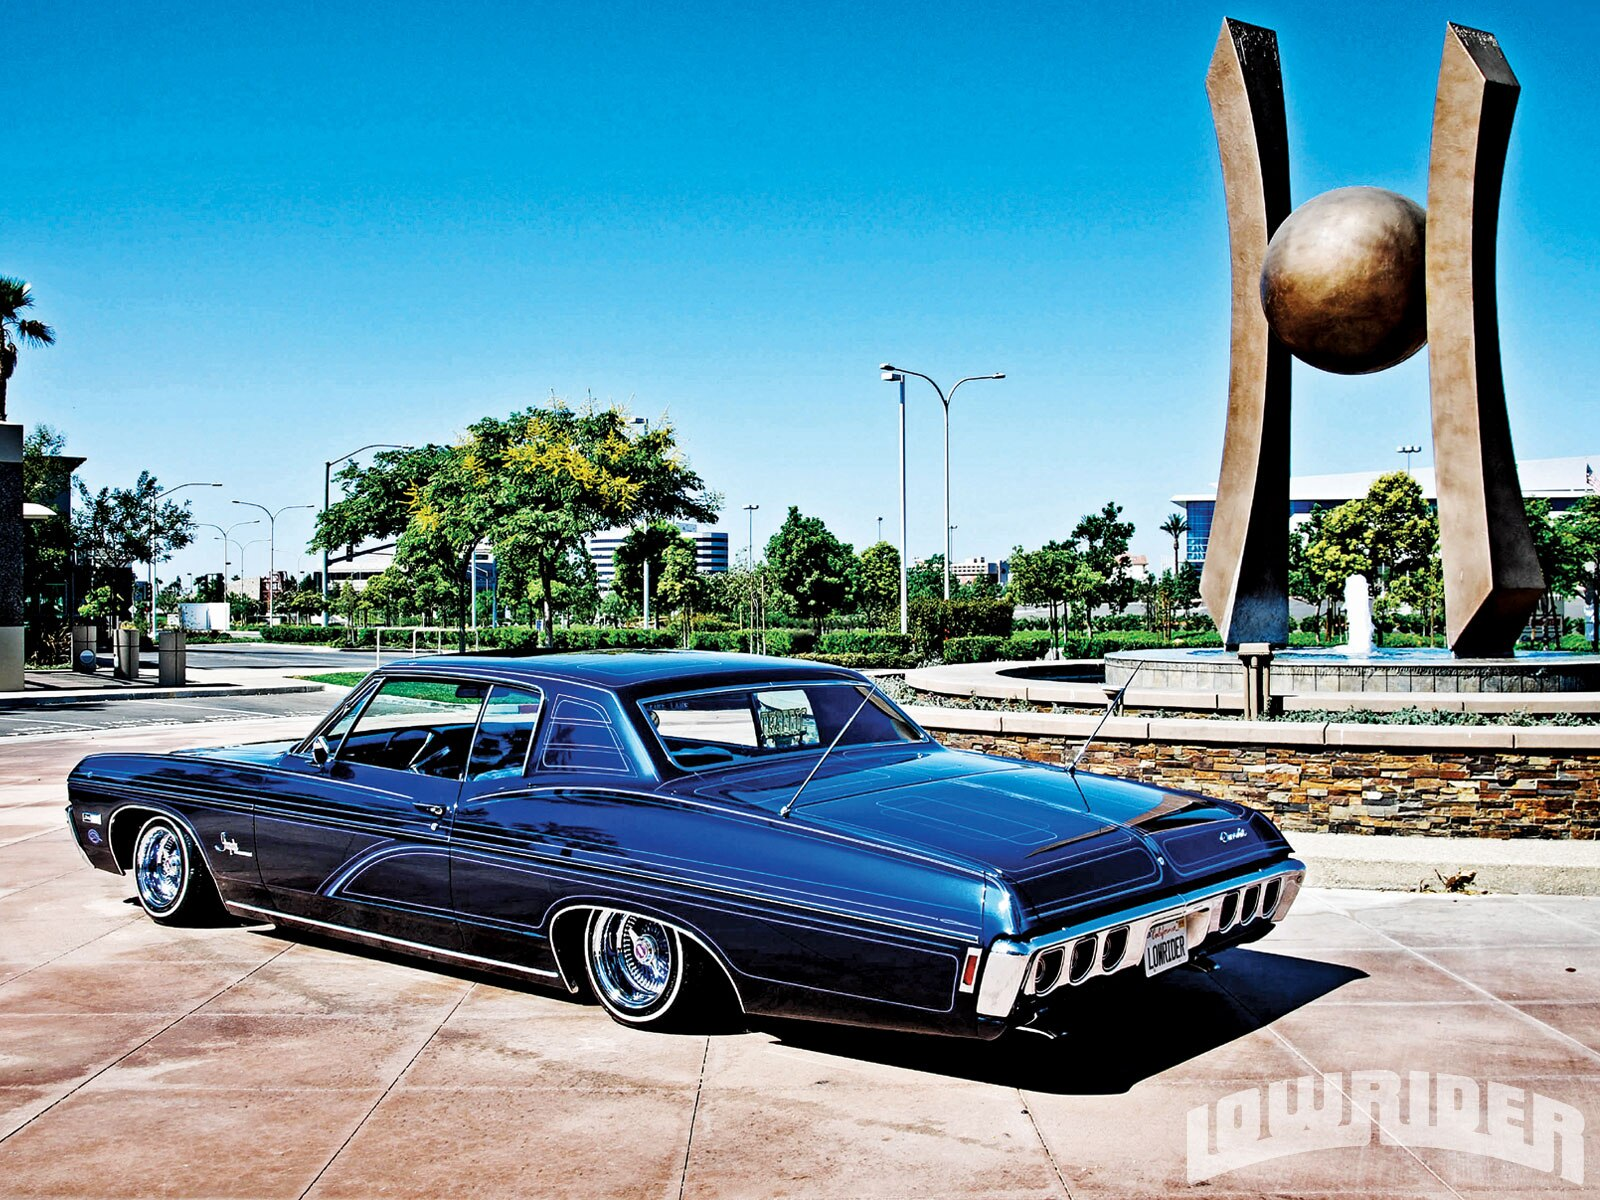 lrmp_1004_01_o-1968_chevrolet_impala-driver_side_rear2